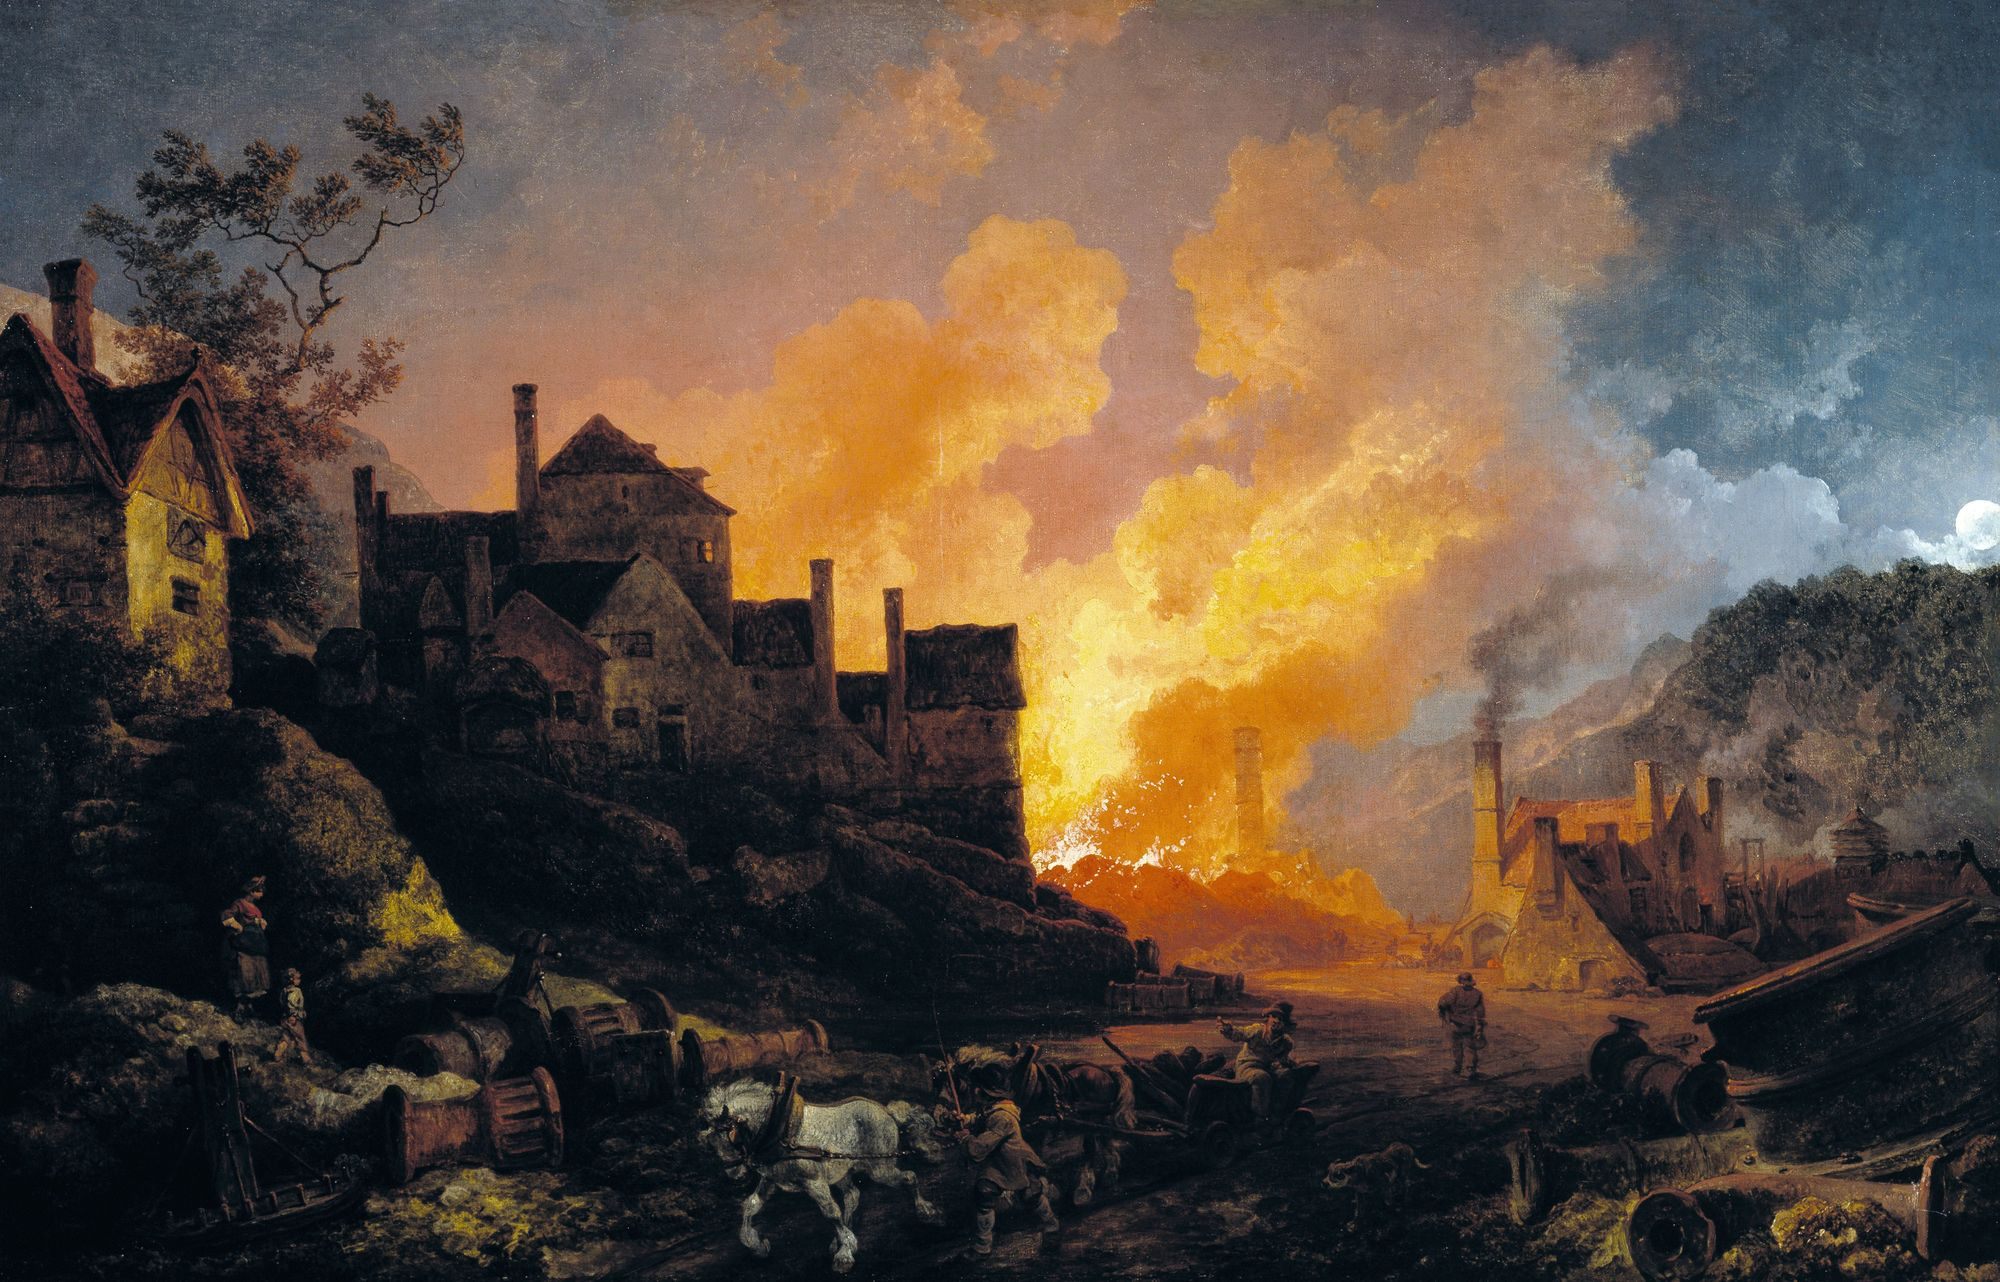 Coalbrookdale by night, Philippe-Jacques de Loutherbourg, 1801.